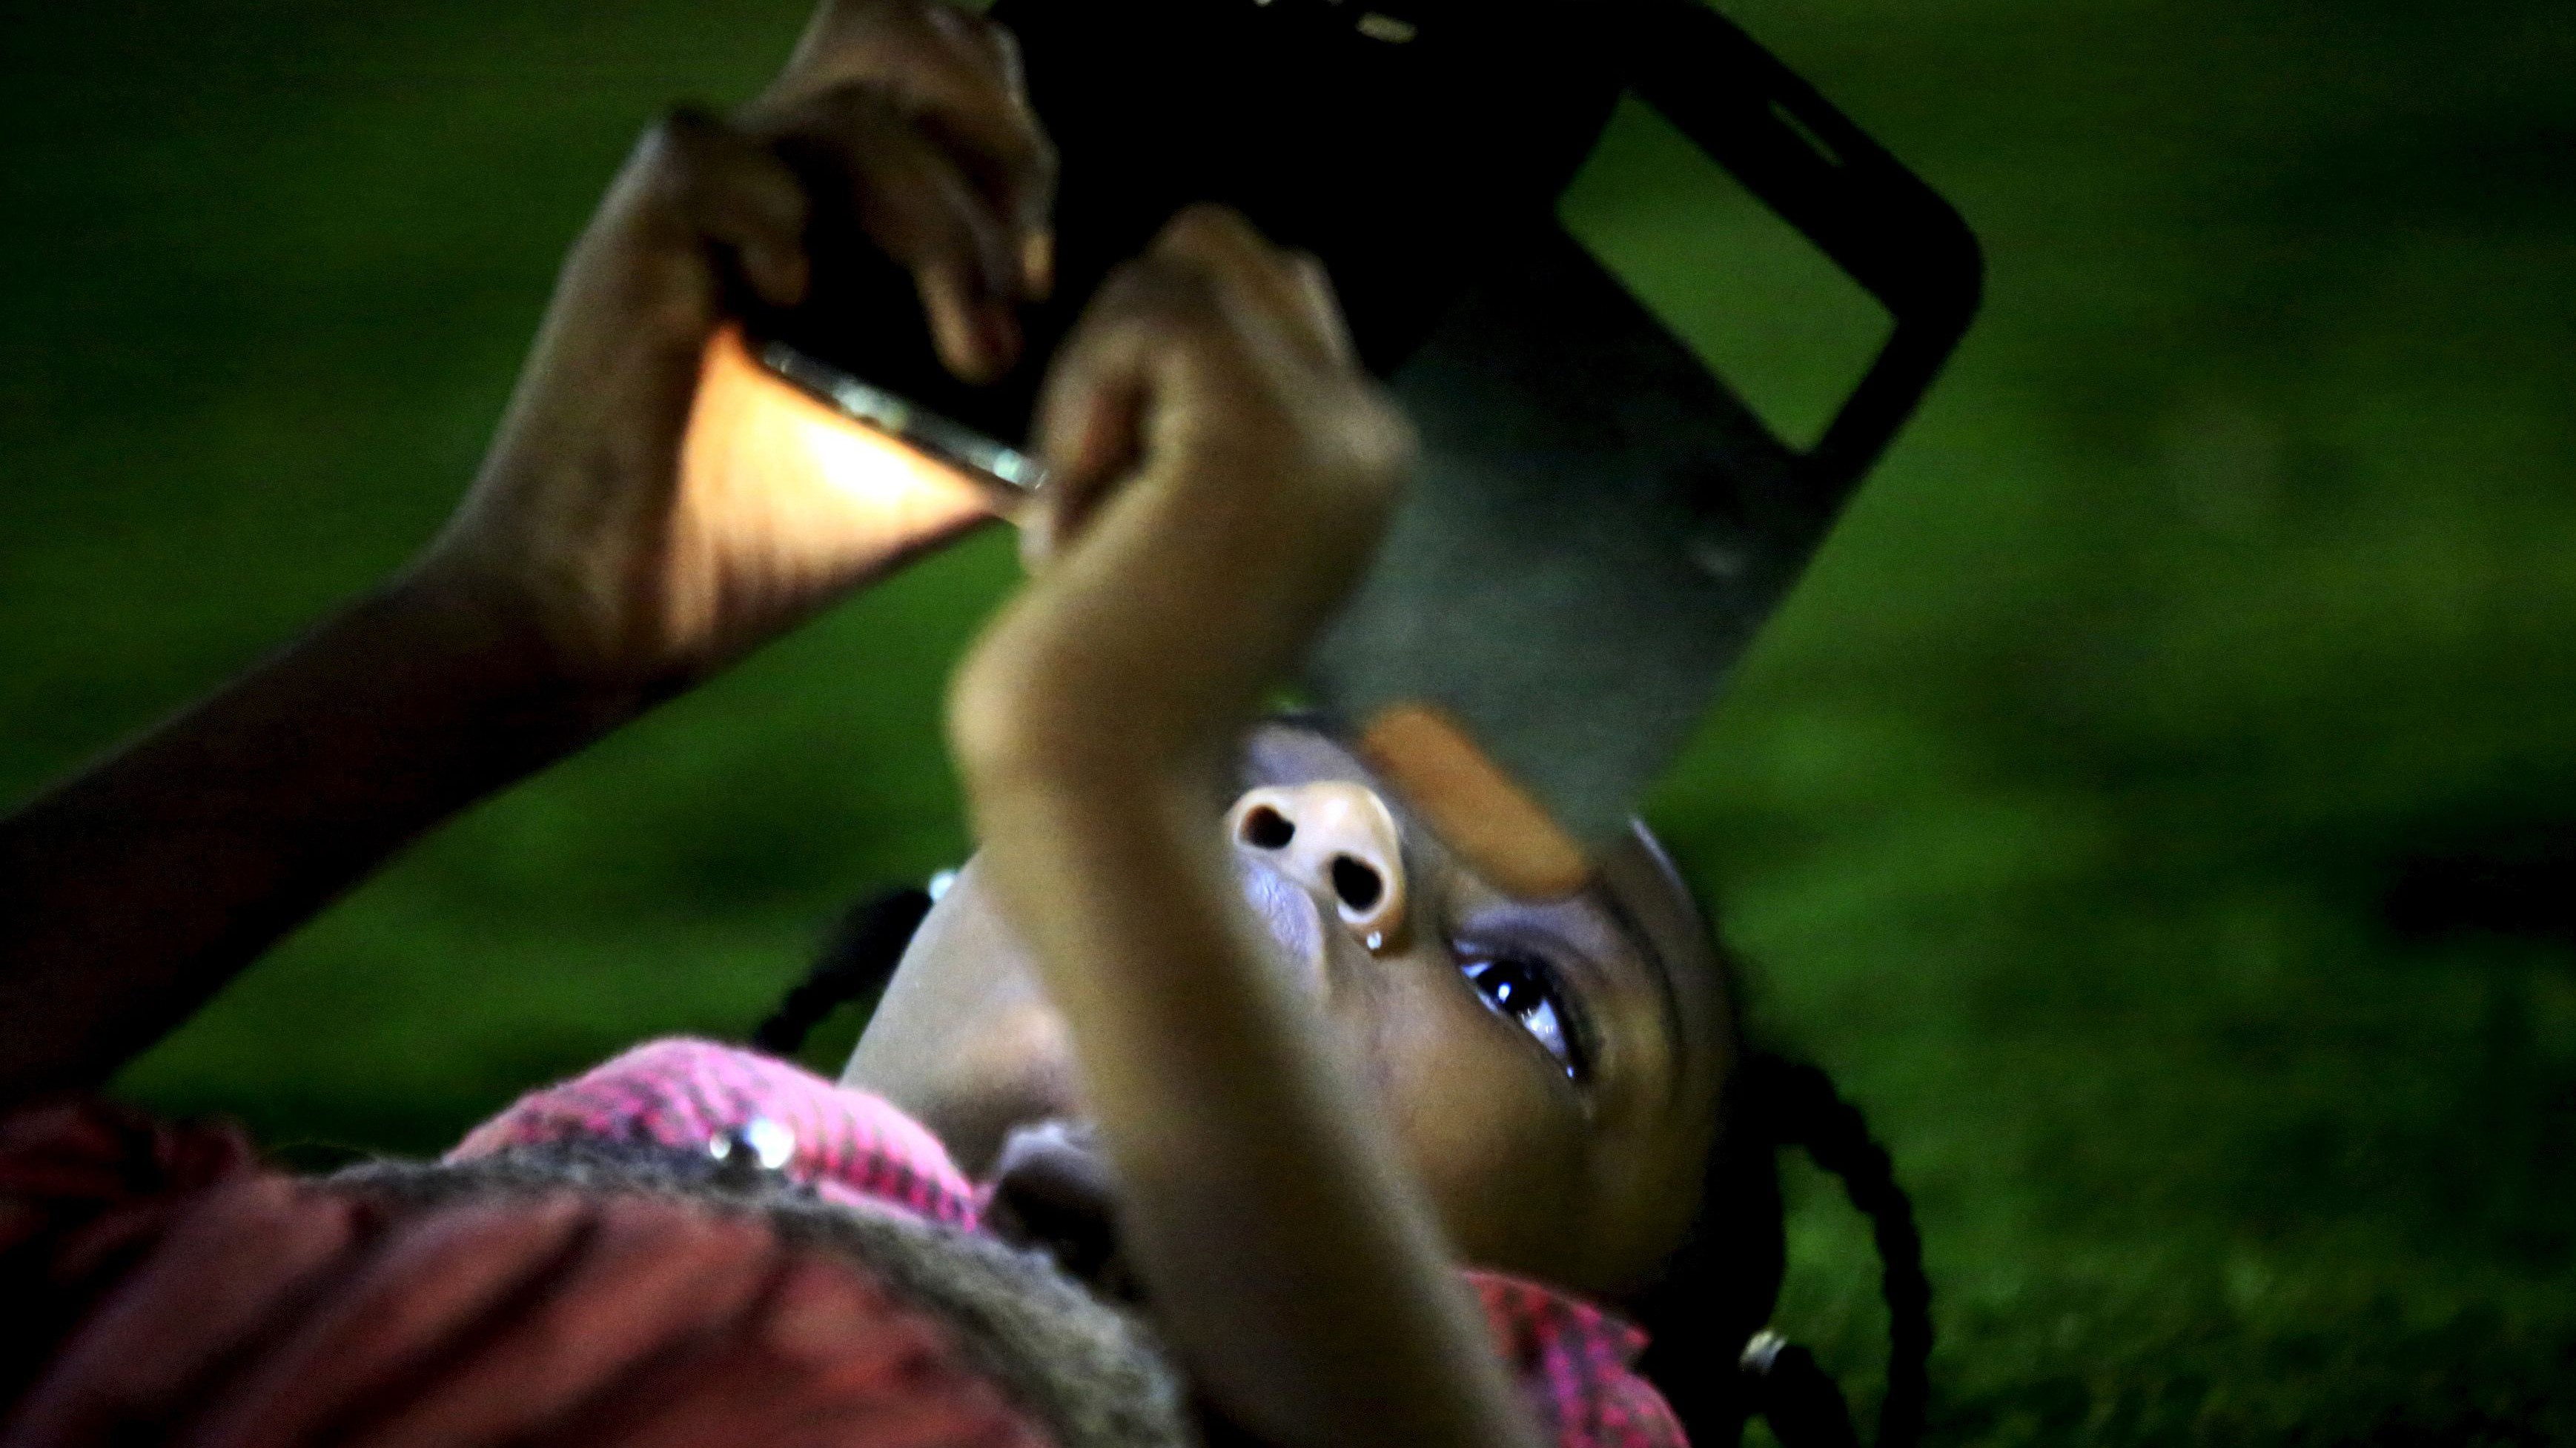 A girl uses her mobile phone during the evening at the National Park in Khartoum, Sudan, April 24, 2015.